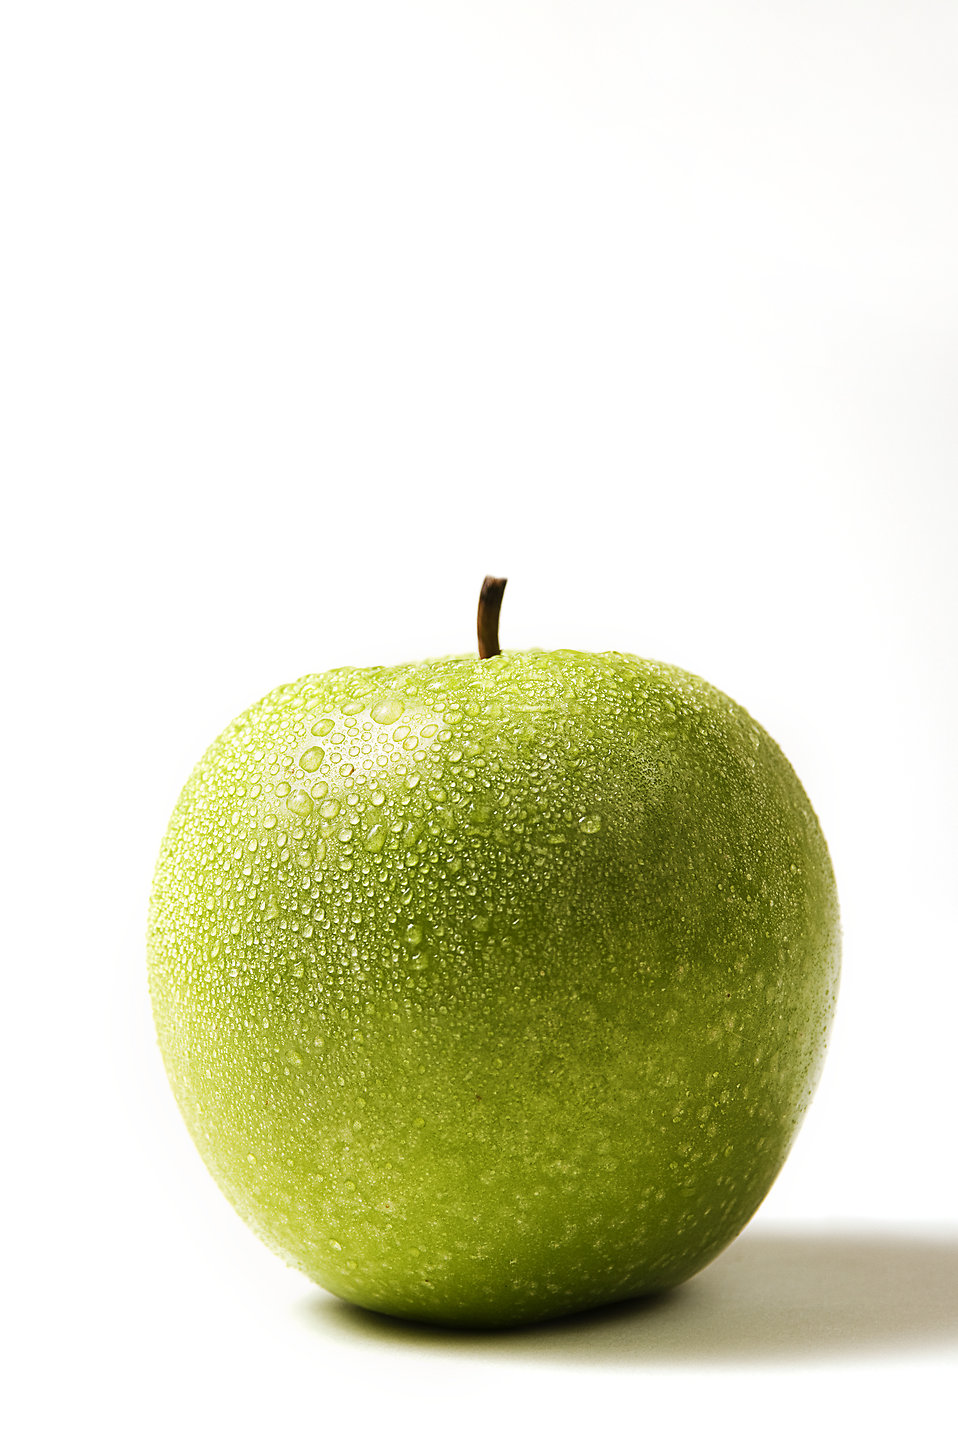 A fresh green apple : Free Stock Photo